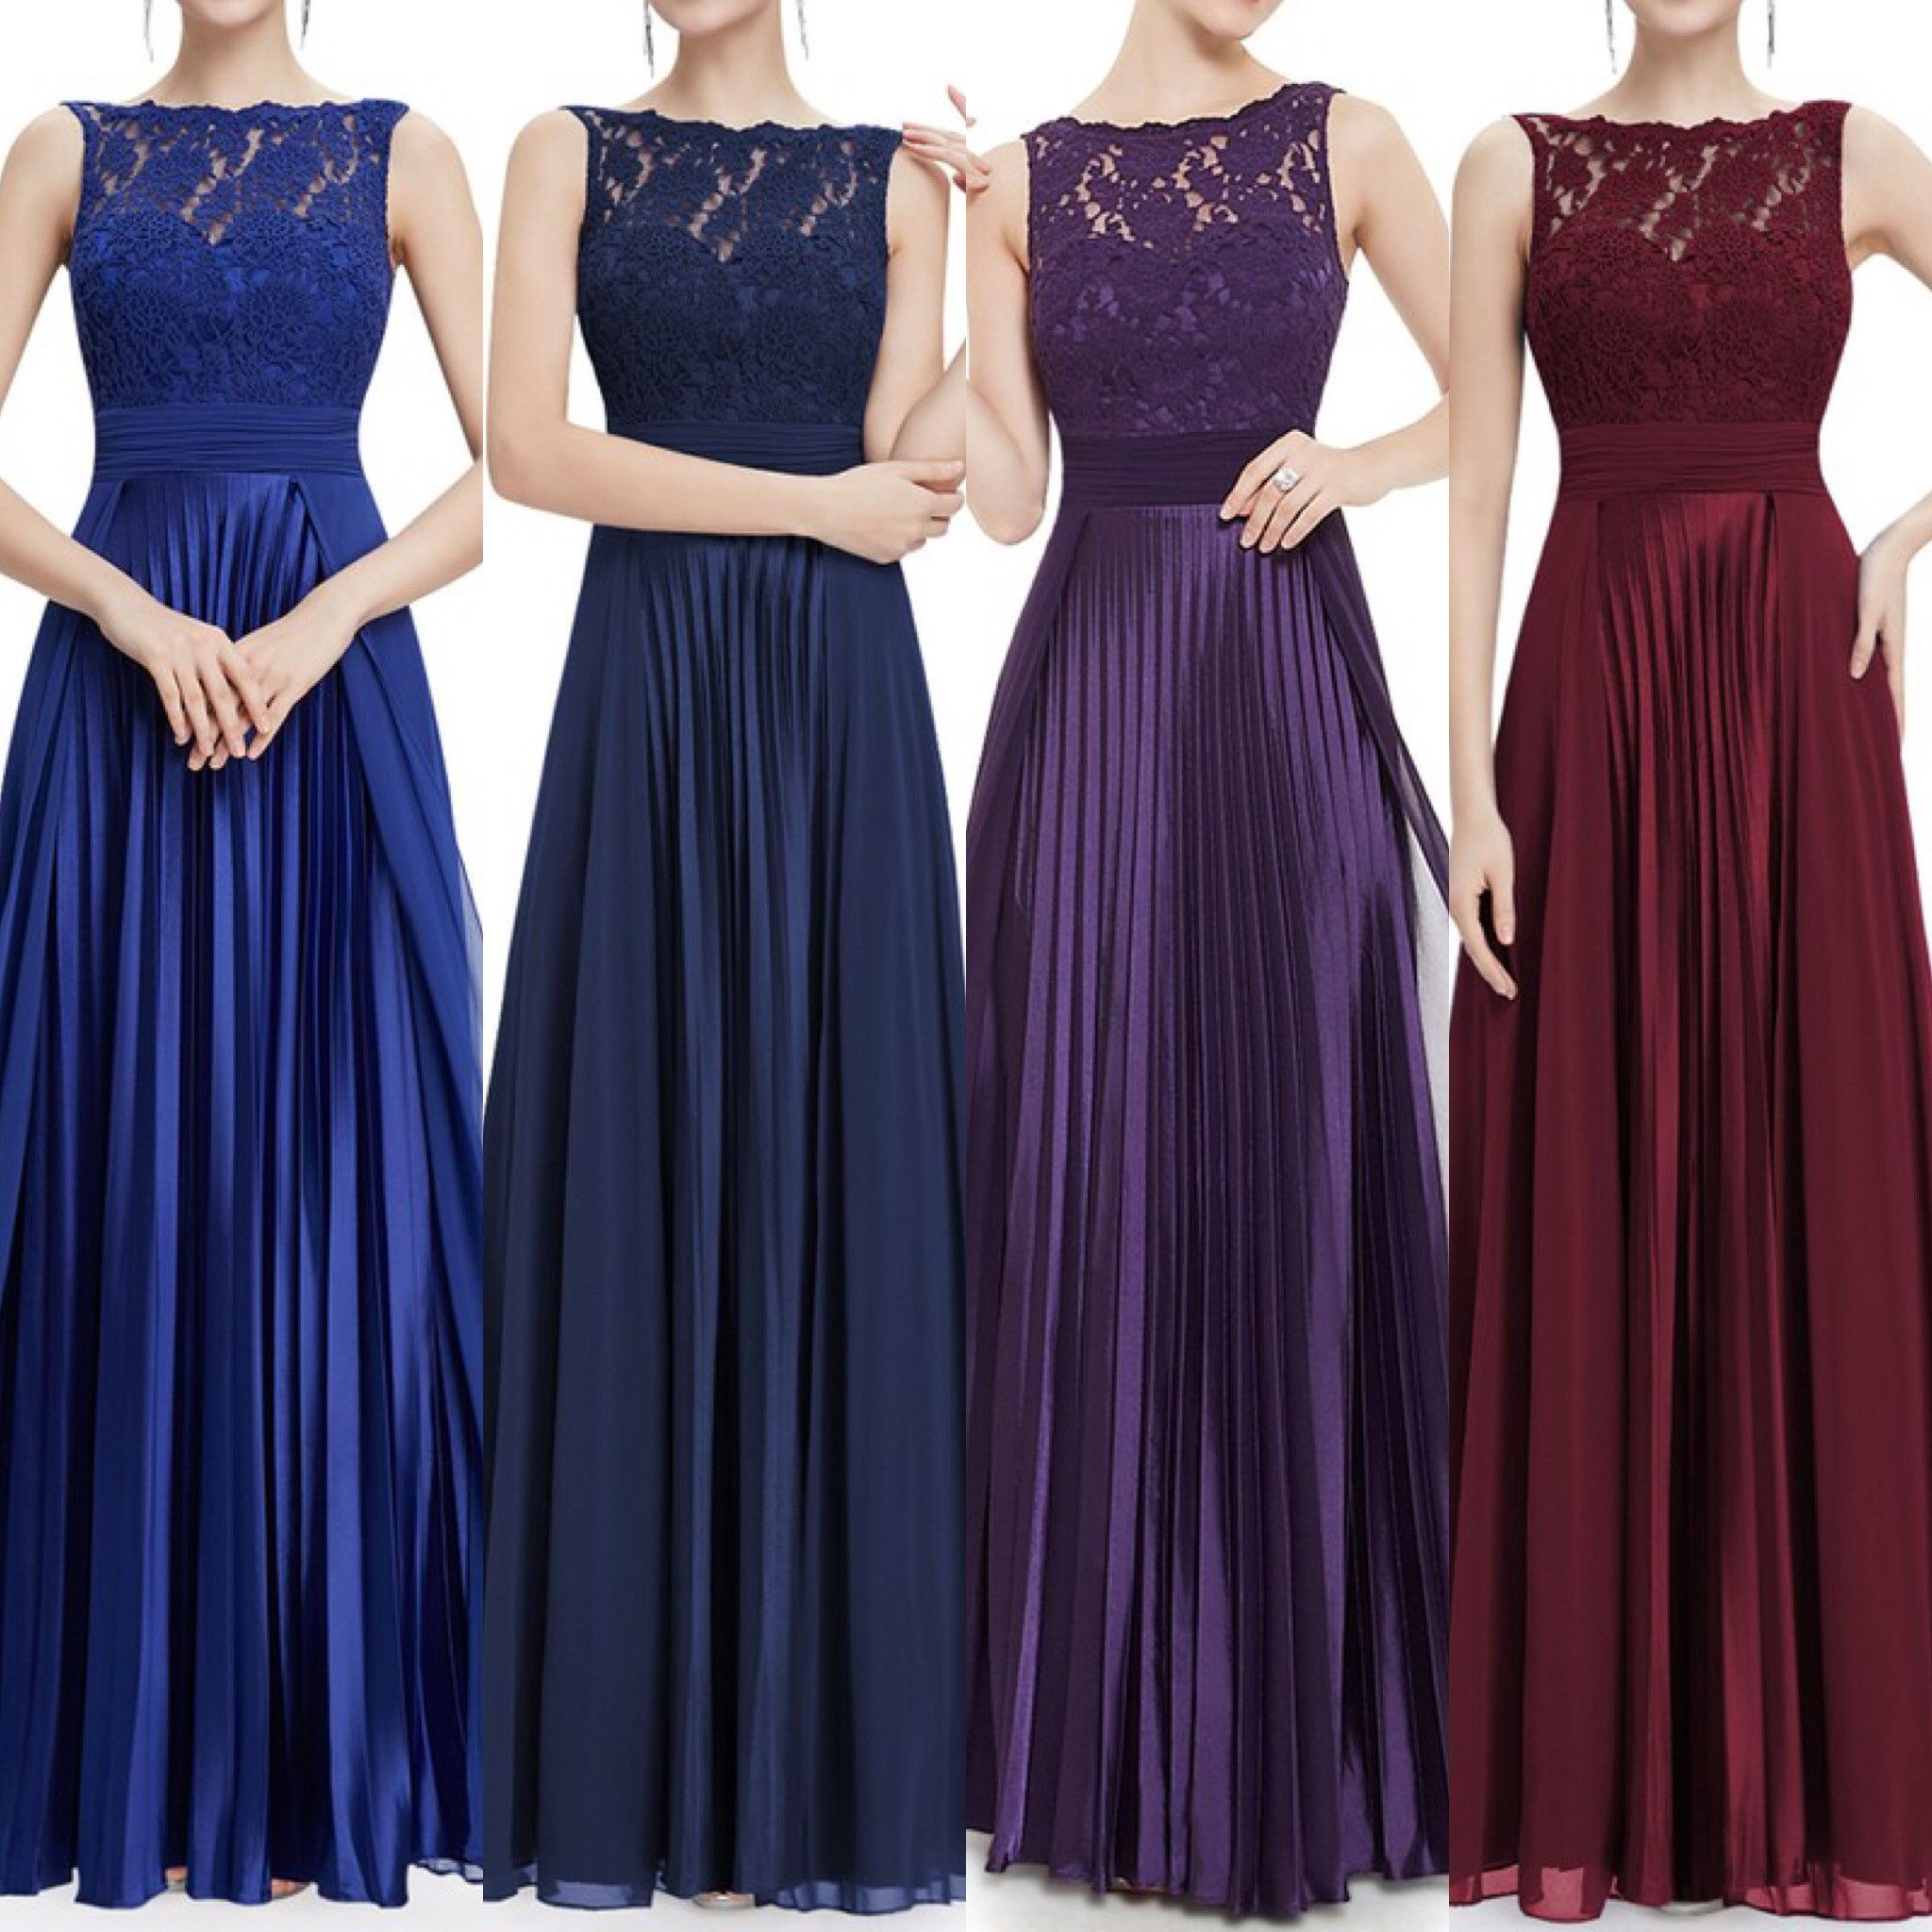 Floor Length Lace, Chiffon and satin pleated Bridesmaid Dress in ...